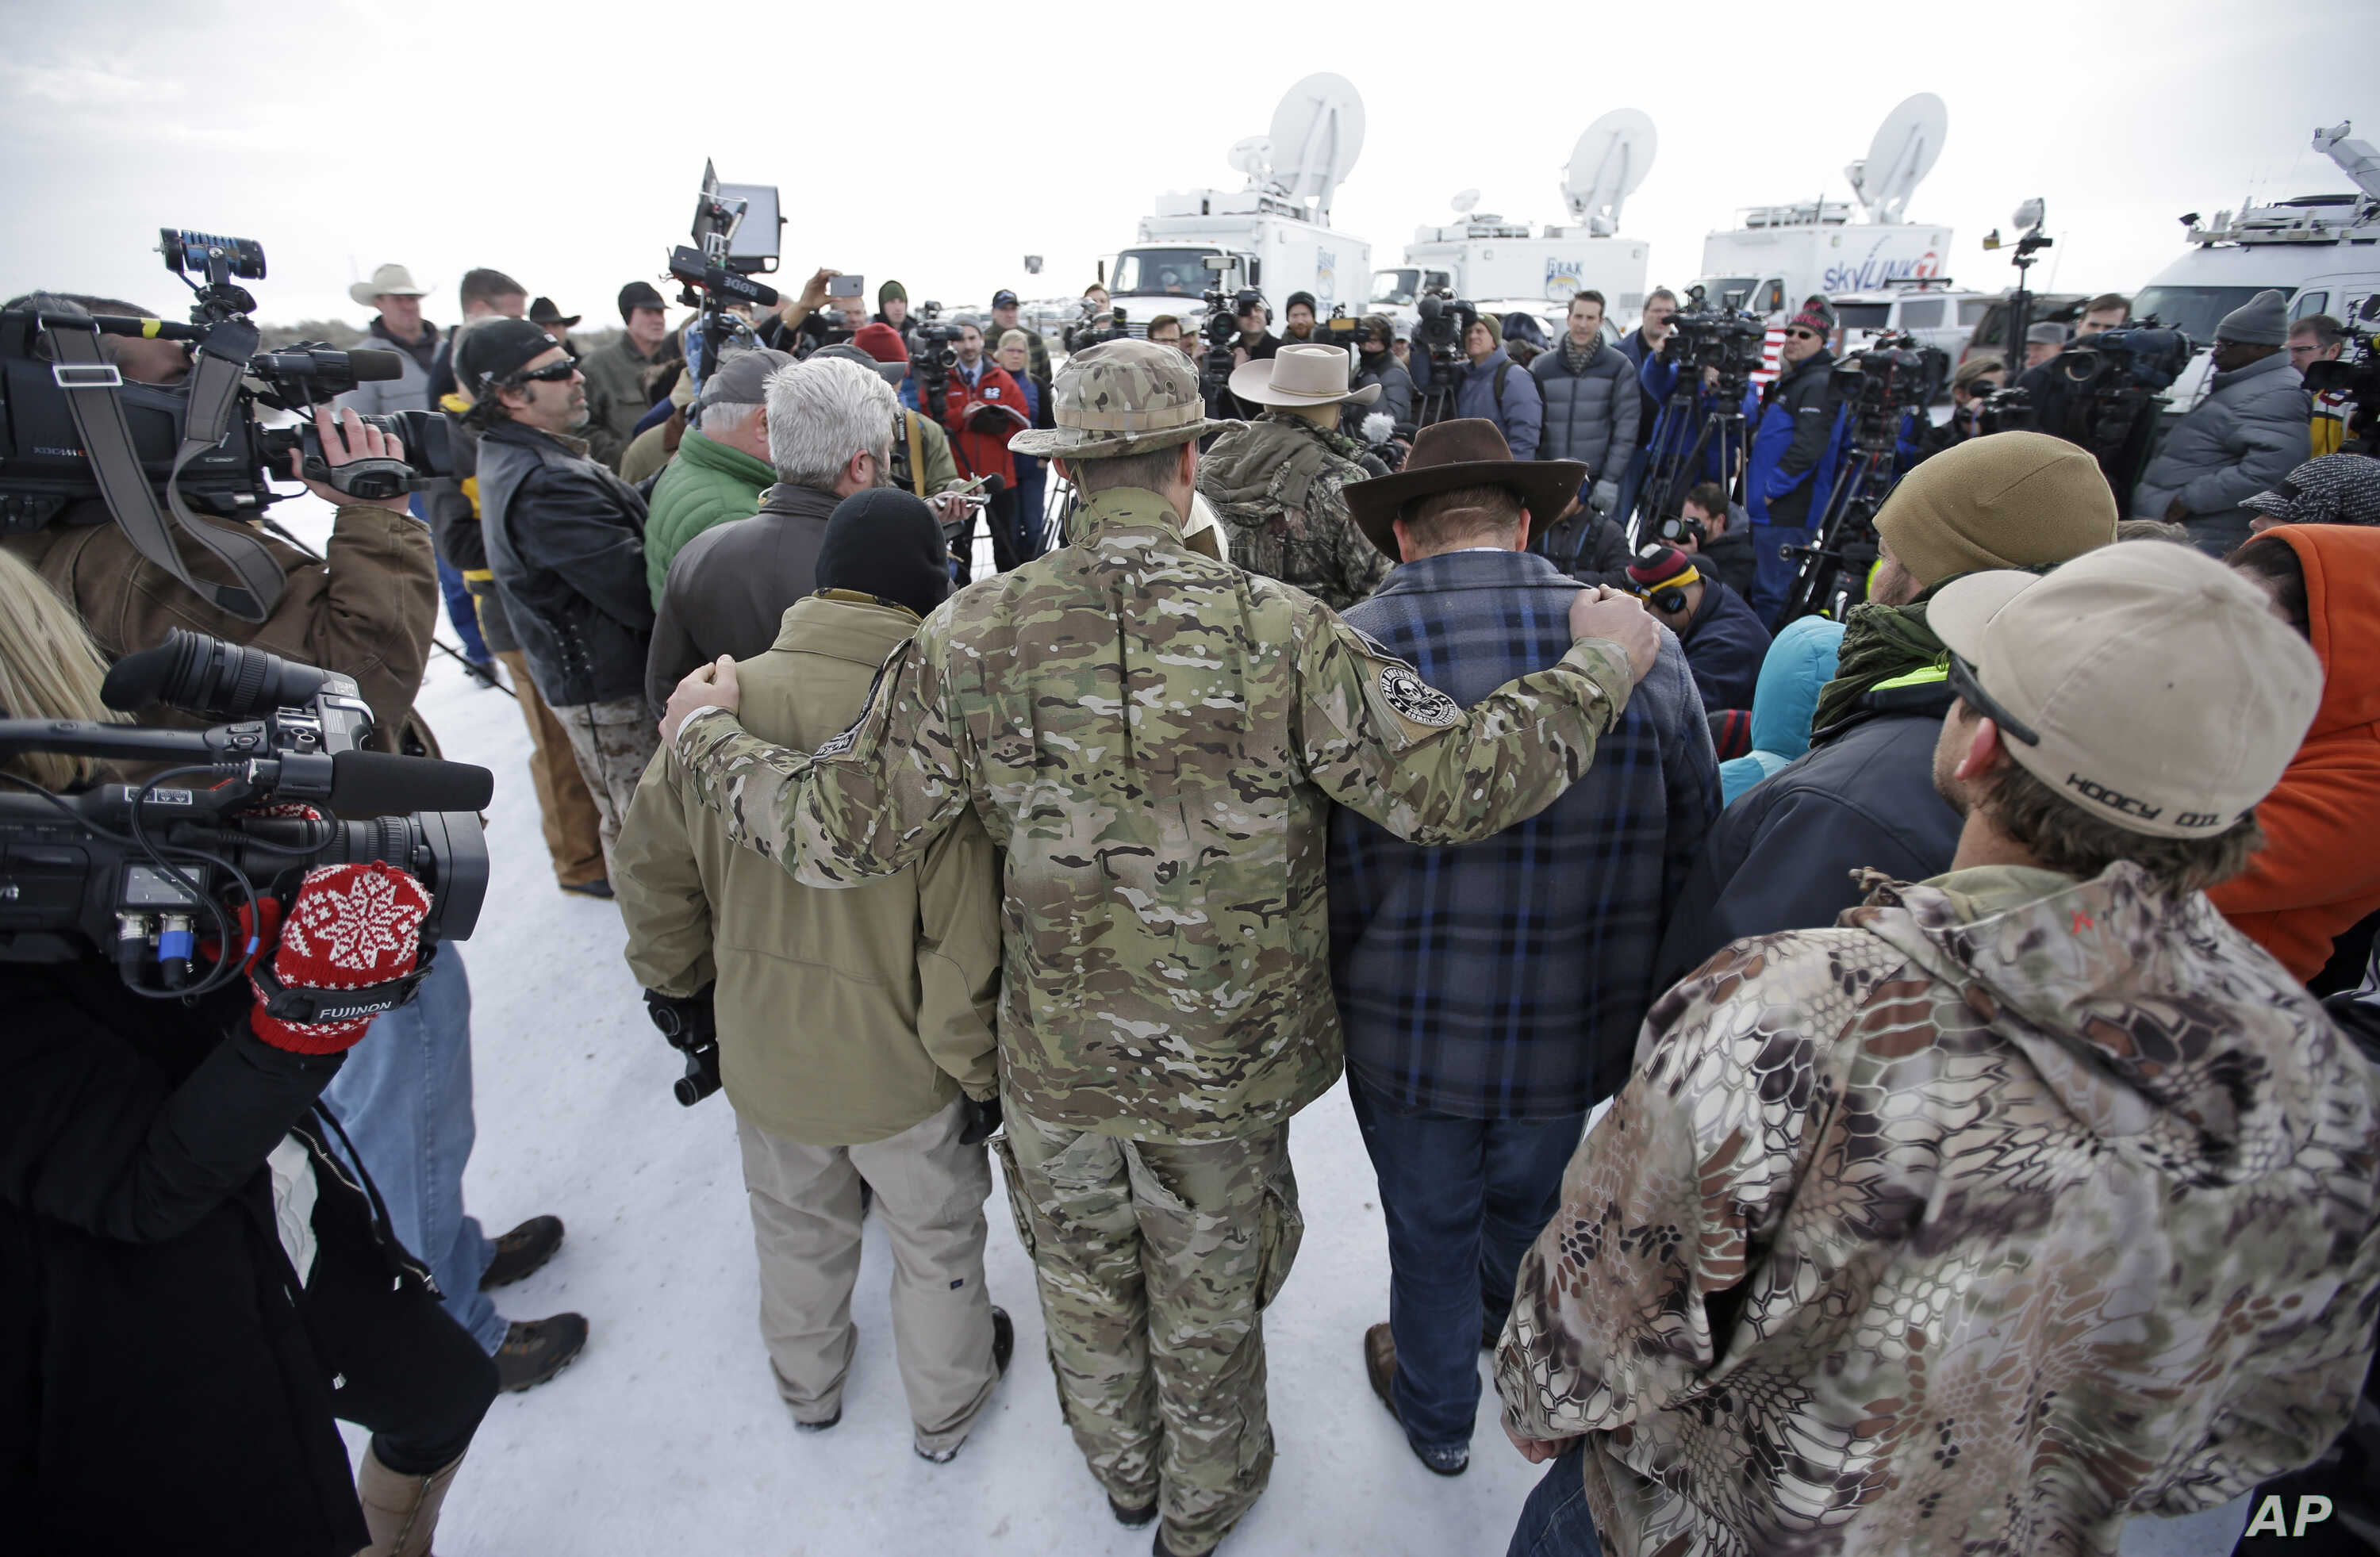 World Media Frame Oregon Standoff in Terms of Race